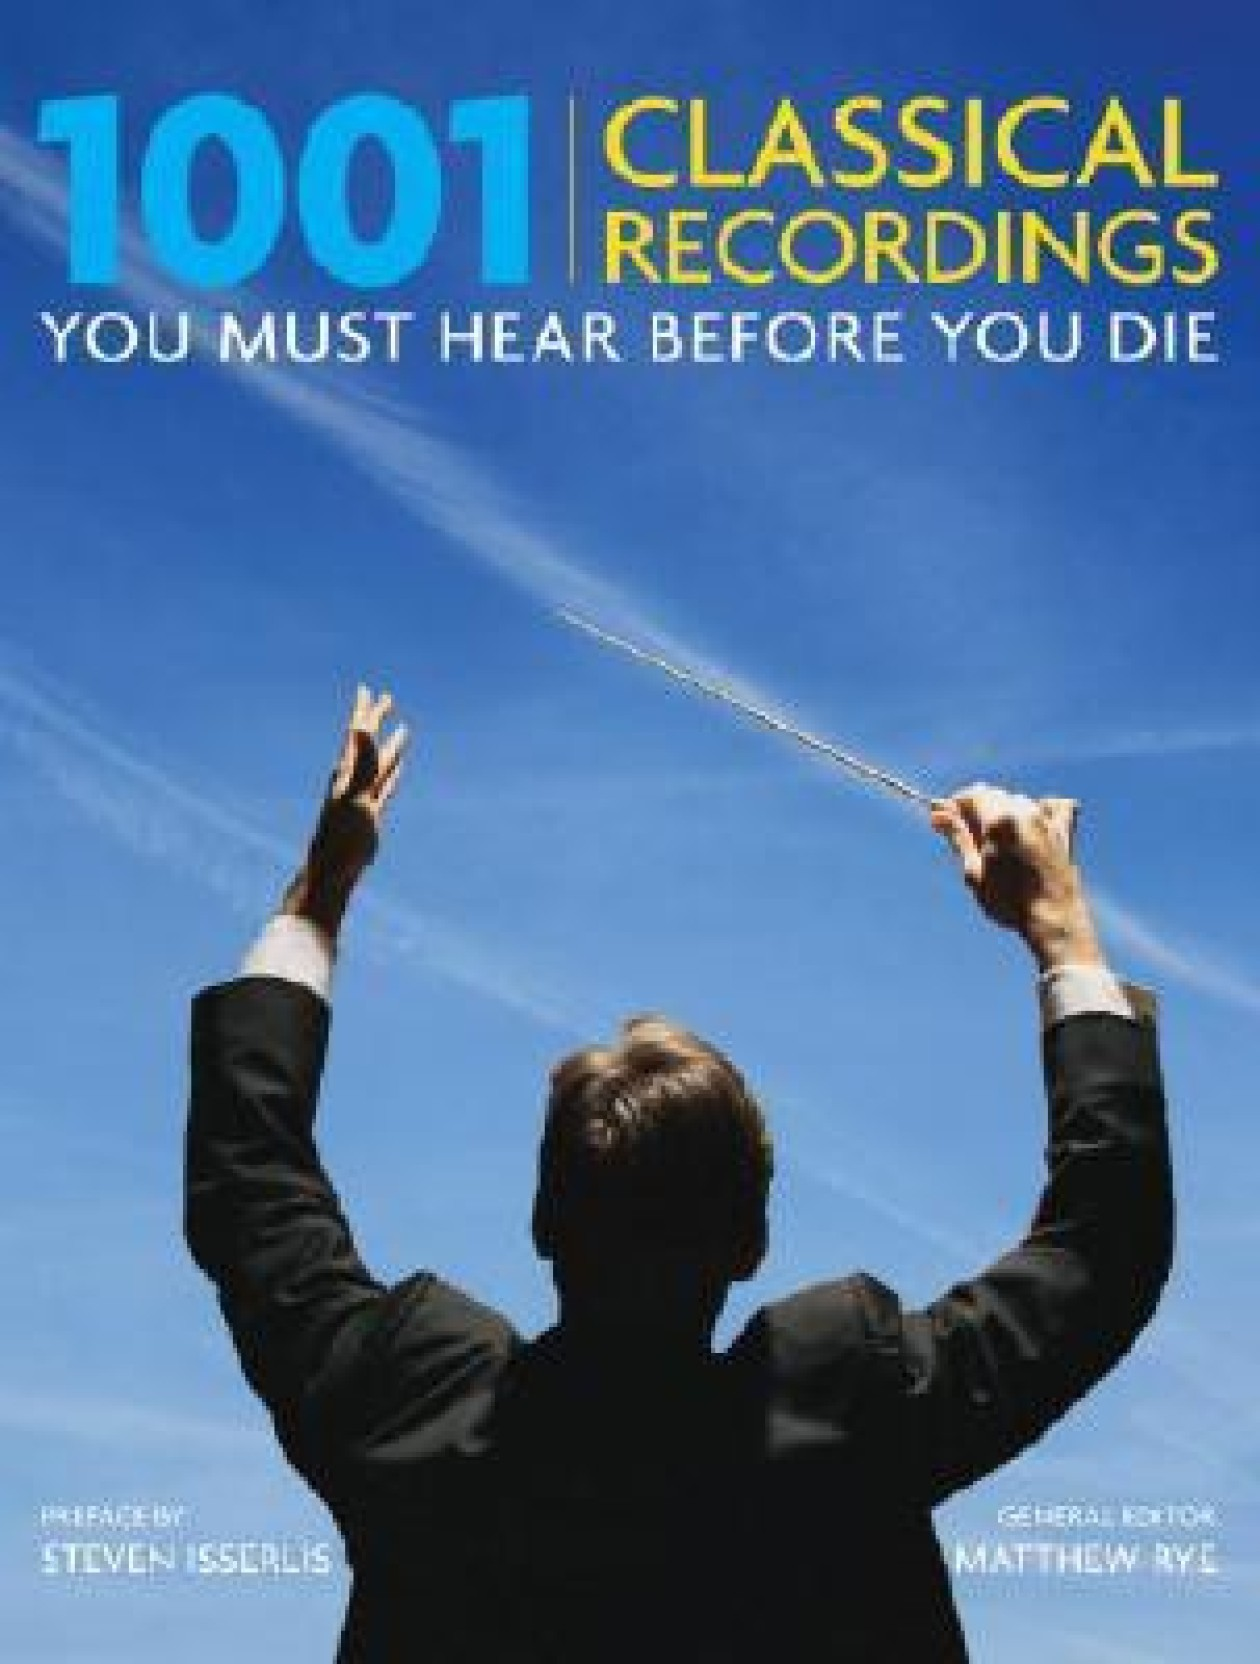 1001 Classical Recordings You Must Hear Before You Die. Share